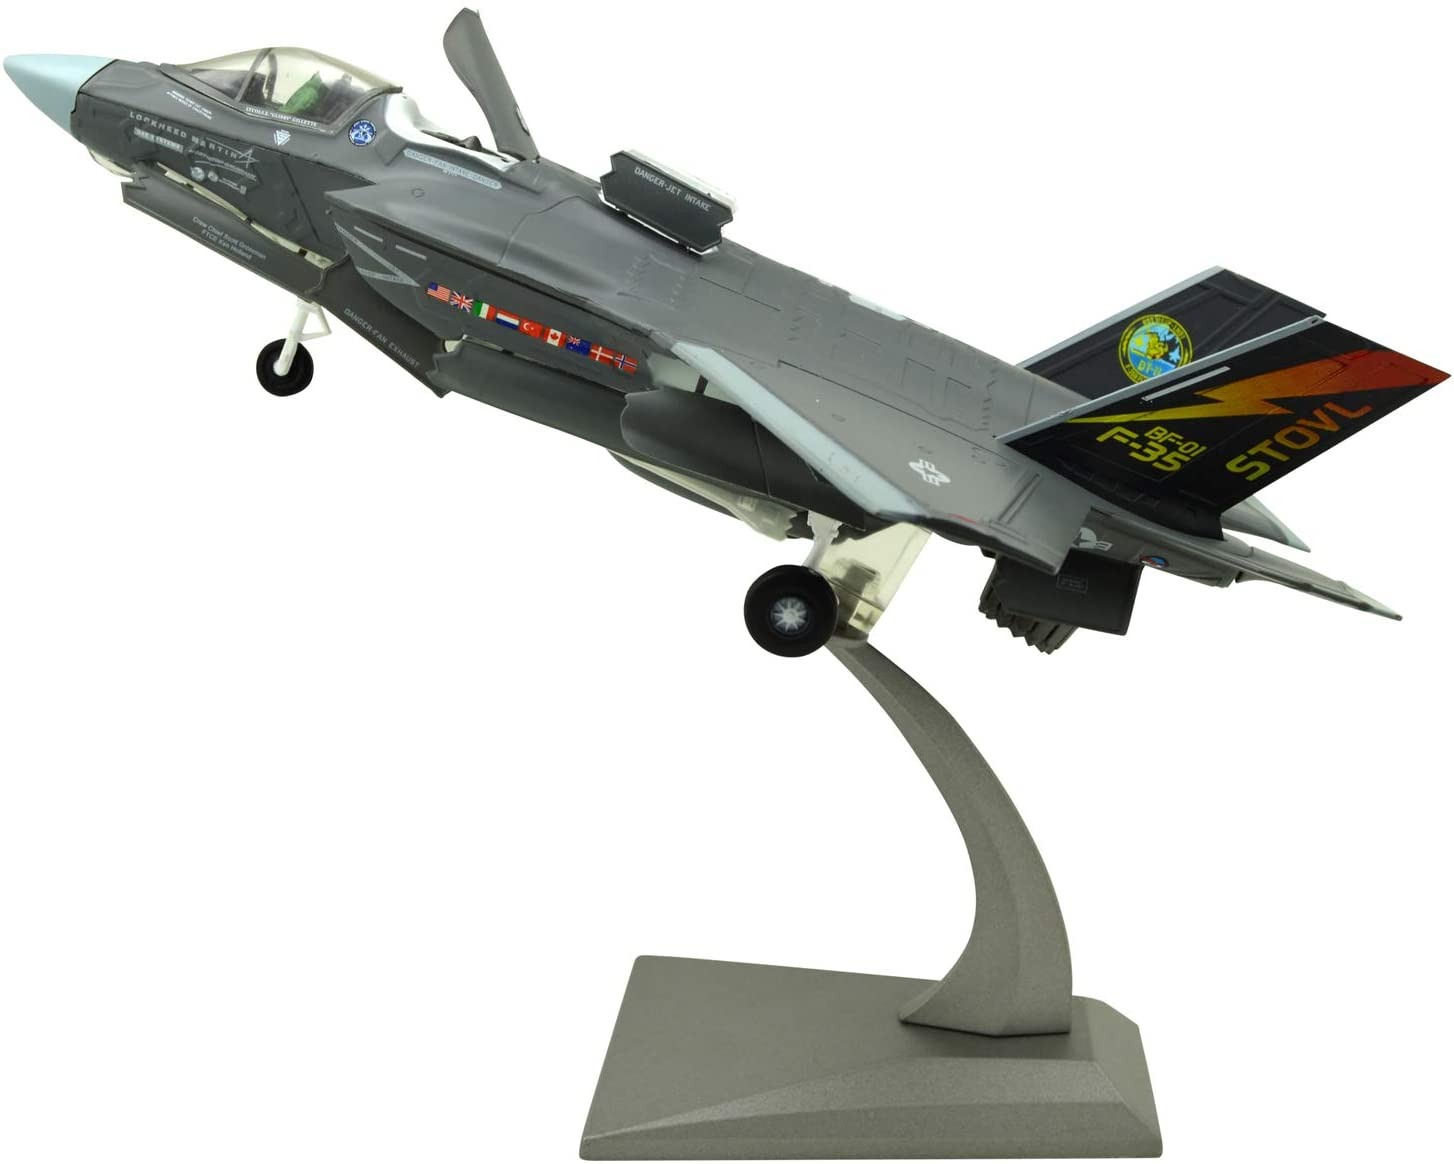 TANG DYNASTY(TM) 1:72 F-35B Joint Strike Fighter Metal Plane Model,US Navy, Military Airplane Model,Diecast Plane,for Collecting and Gift